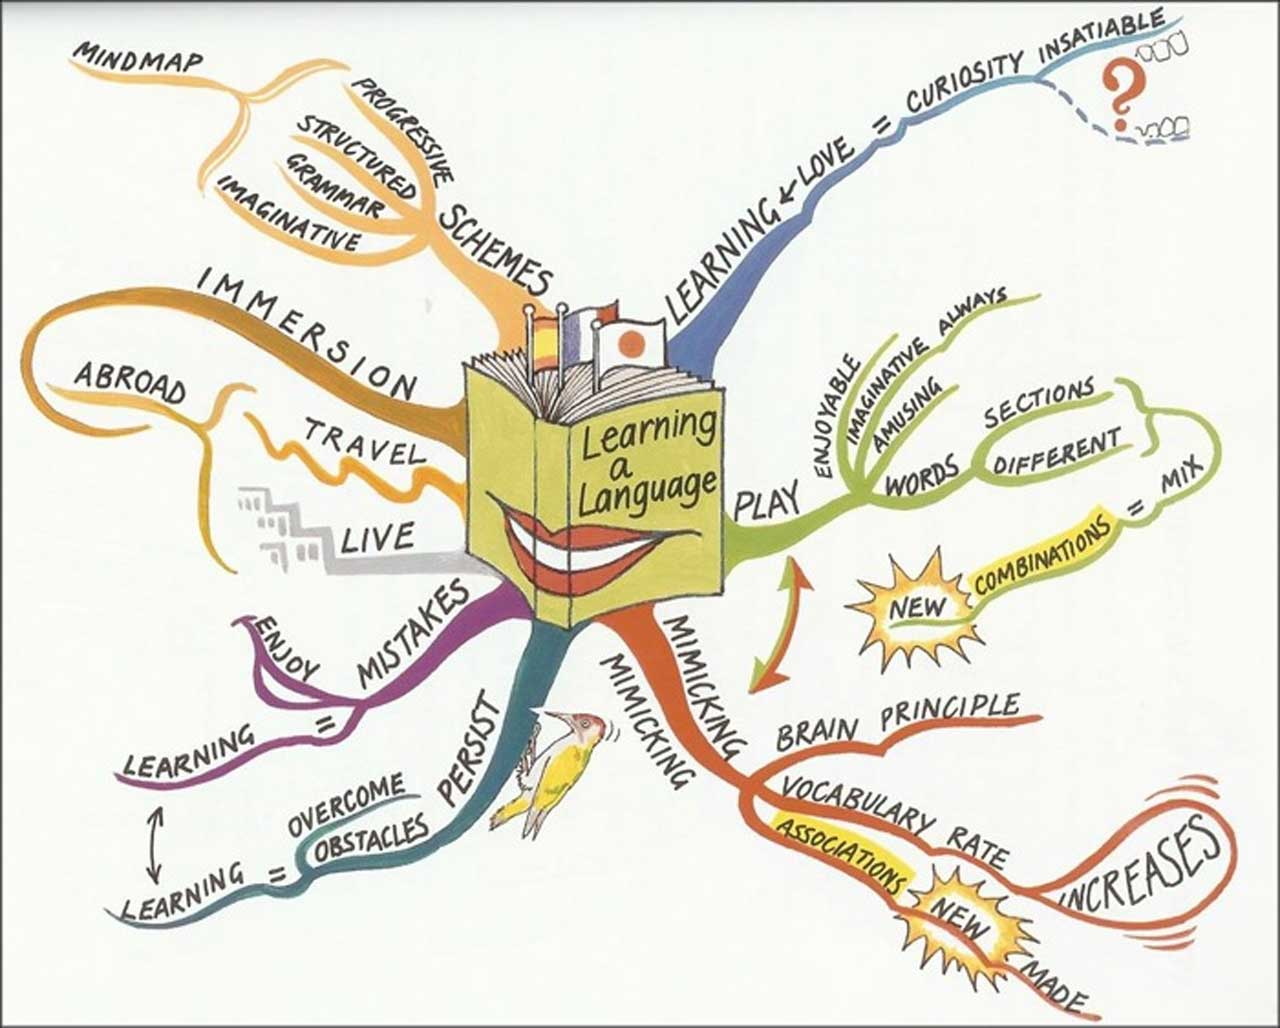 ind map from the Tony Buzan Learning Center, regarding learning a language.